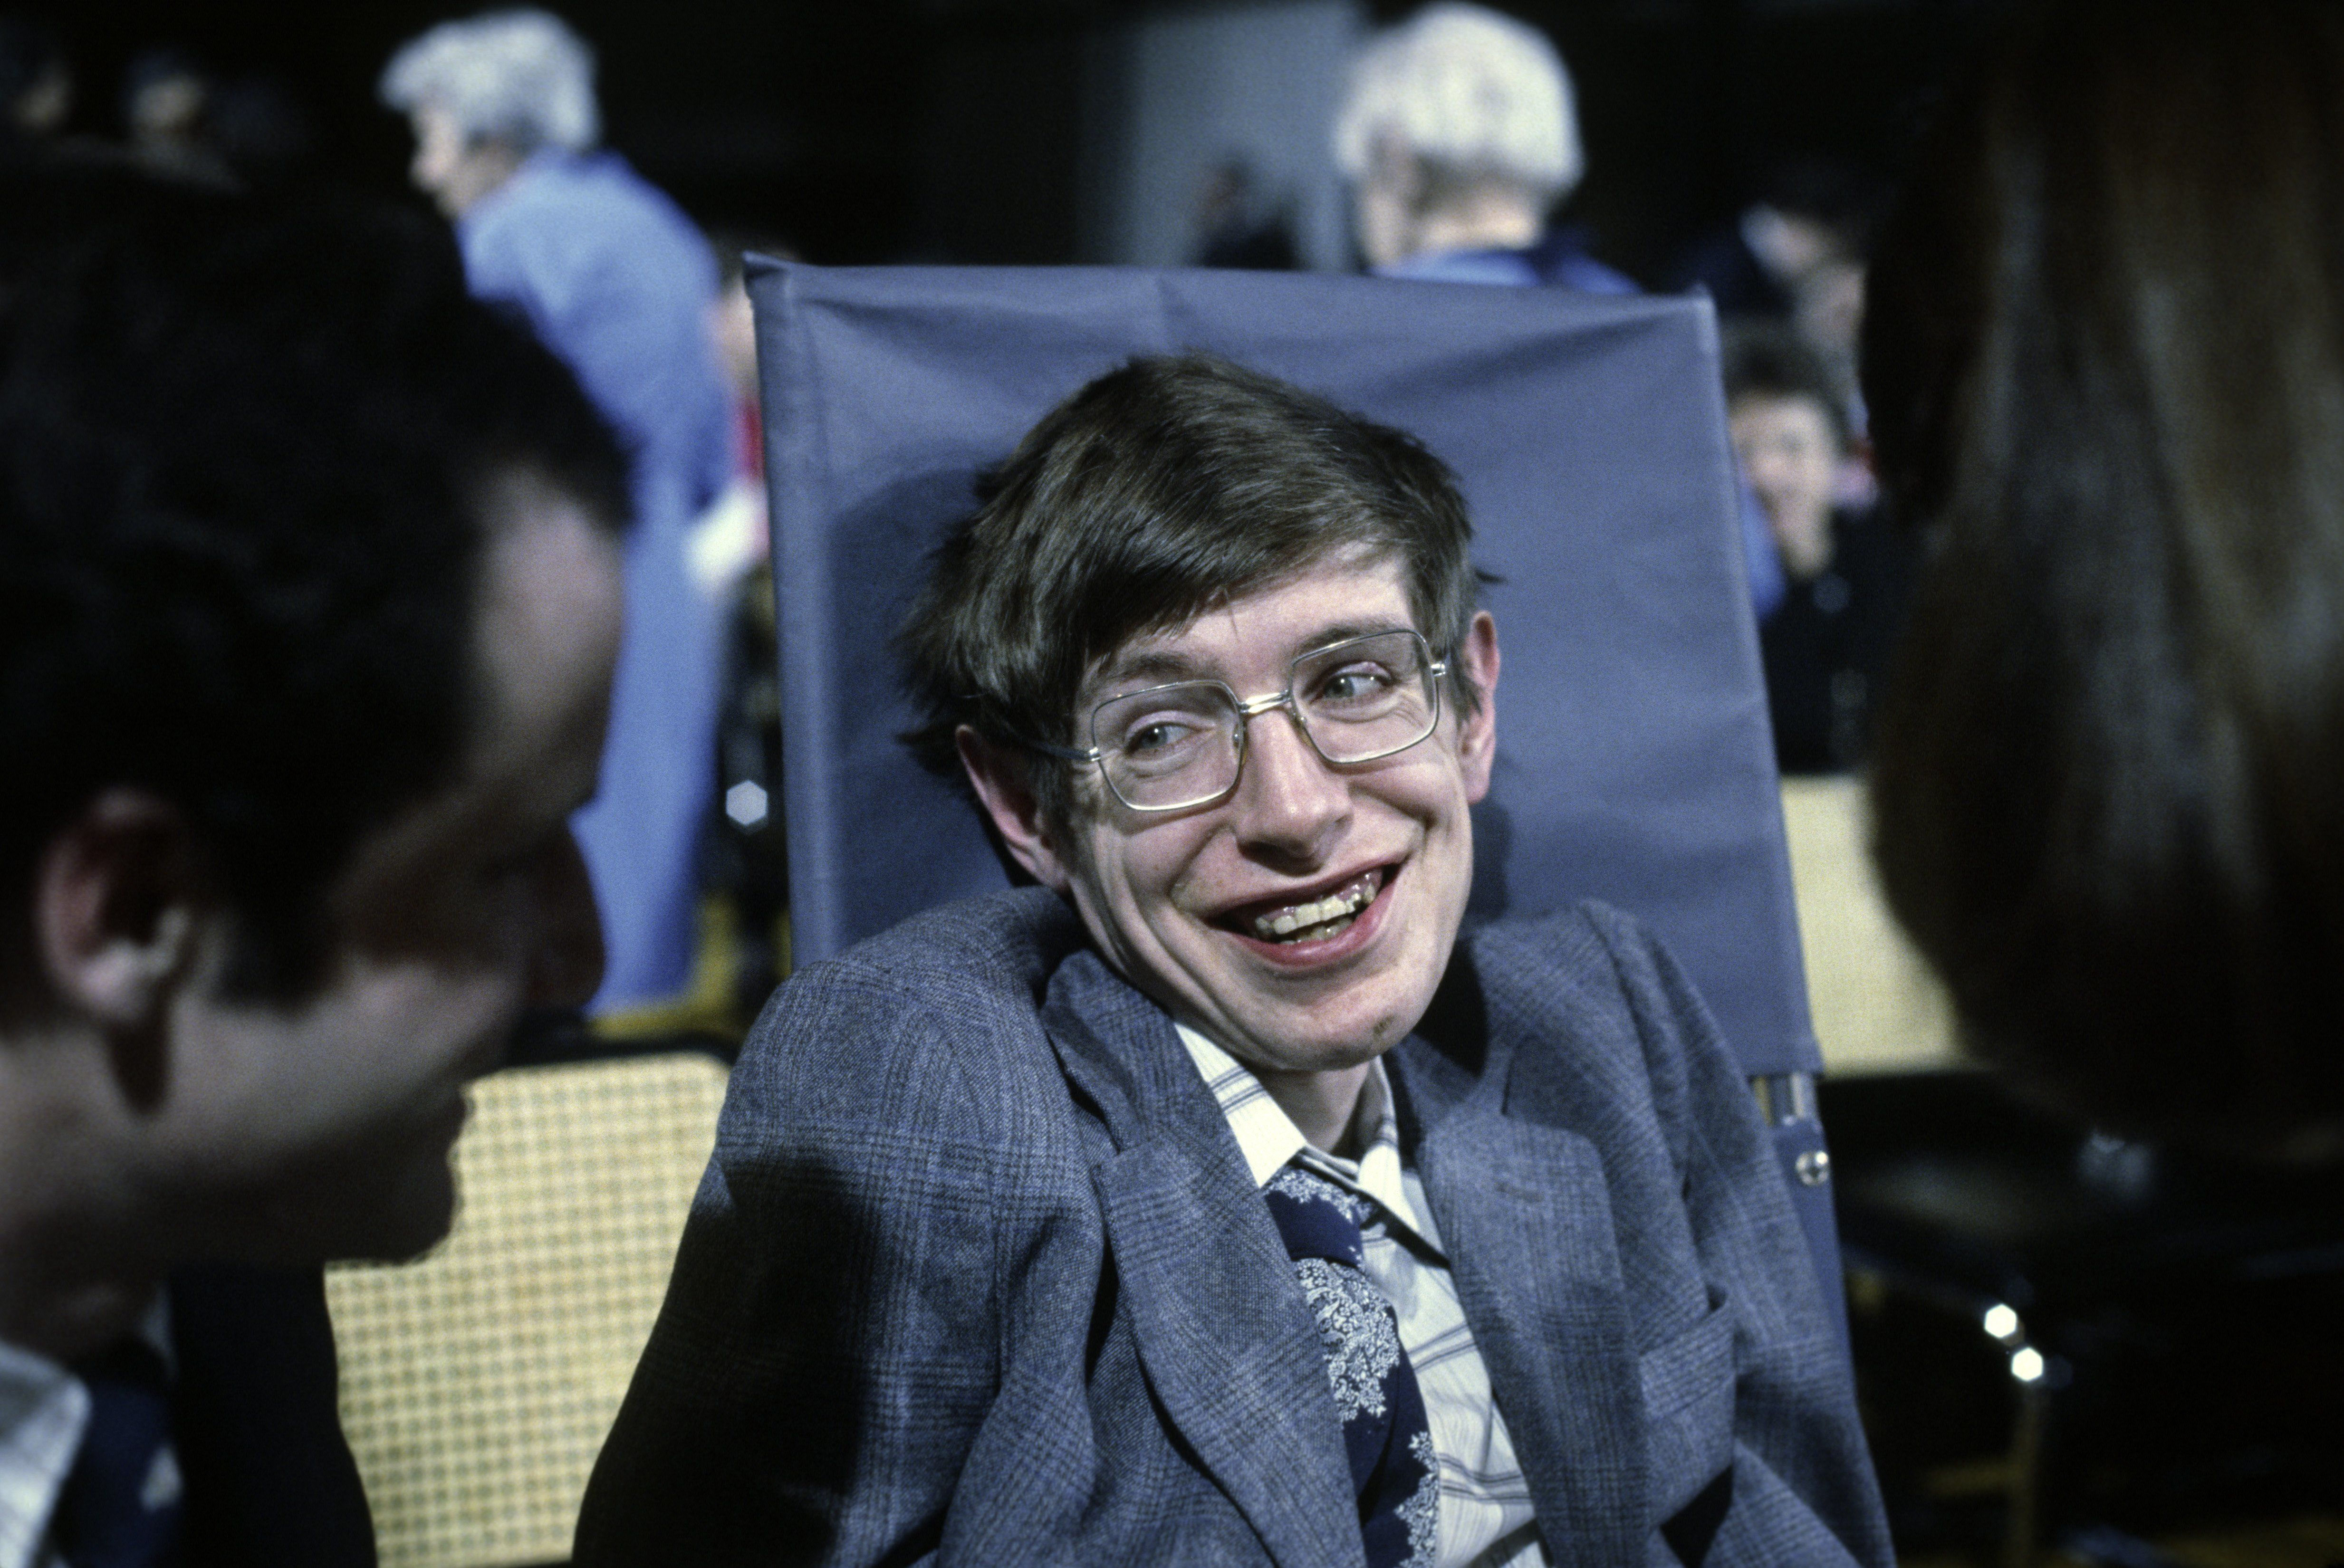 Hawking pictured in 1979 aged